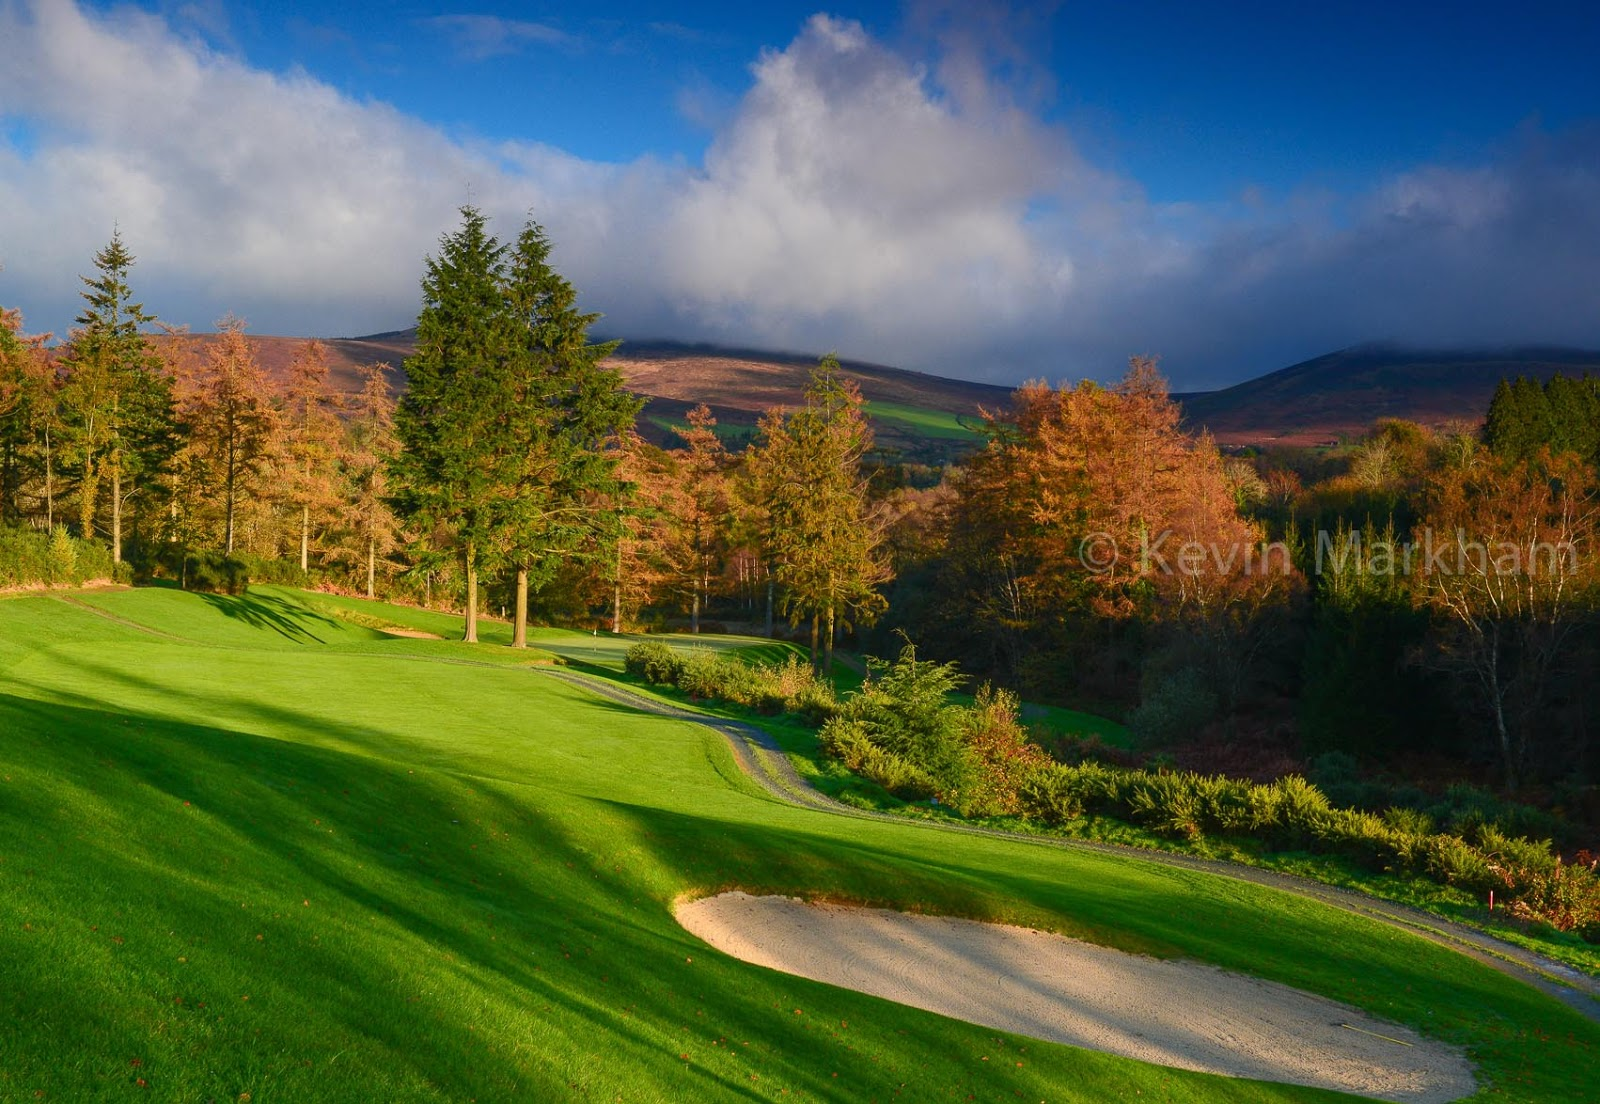 Macreddin Where The Destination Golf Premier Card Offers Visitors 4 Green Fees For Price Of 2